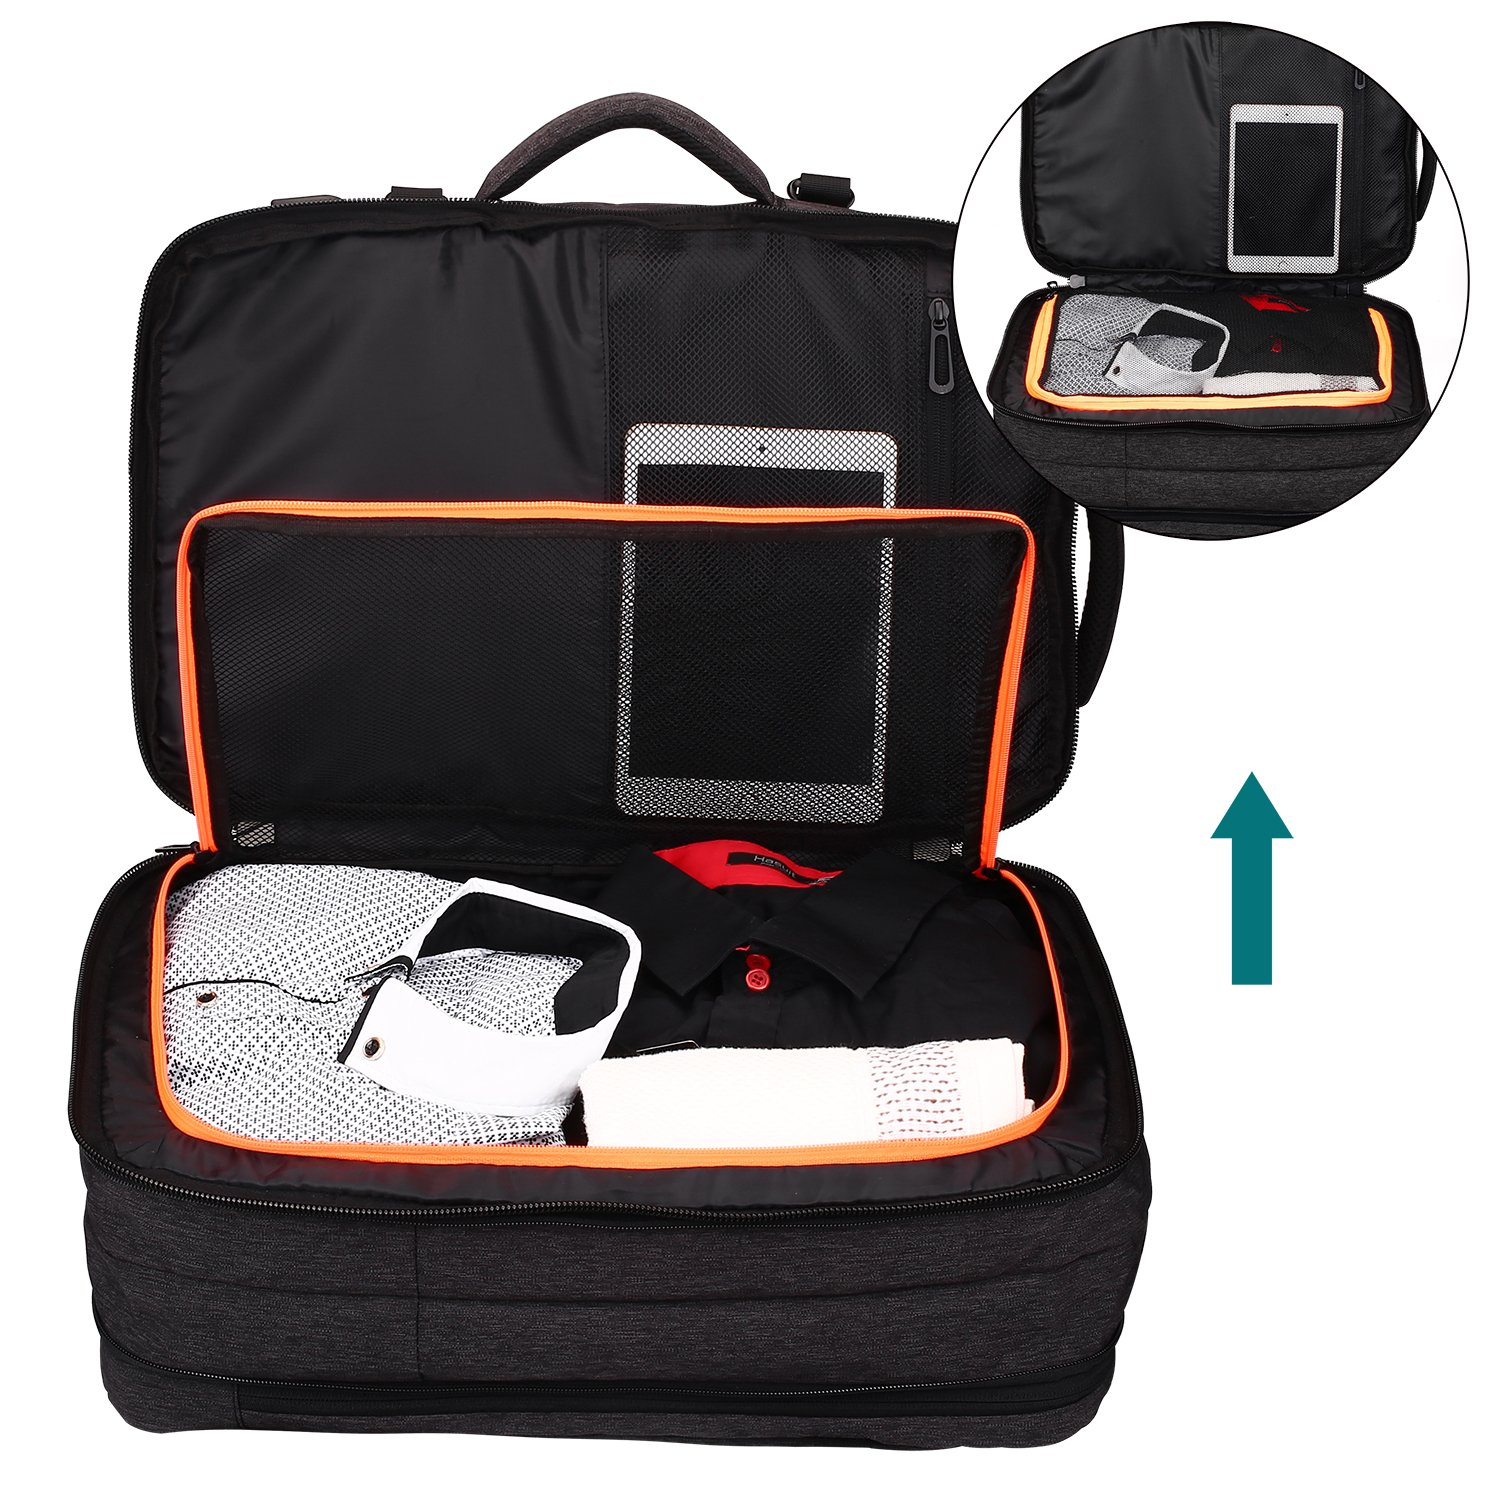 Lifeasy Travel Backpack, 35L Carry-On Daypack Flight Approved Laptop Expandable Weekender Multipurpose Trip Bag Business Backpacks with USB Charging Port Grey by Lifeasy (Image #2)